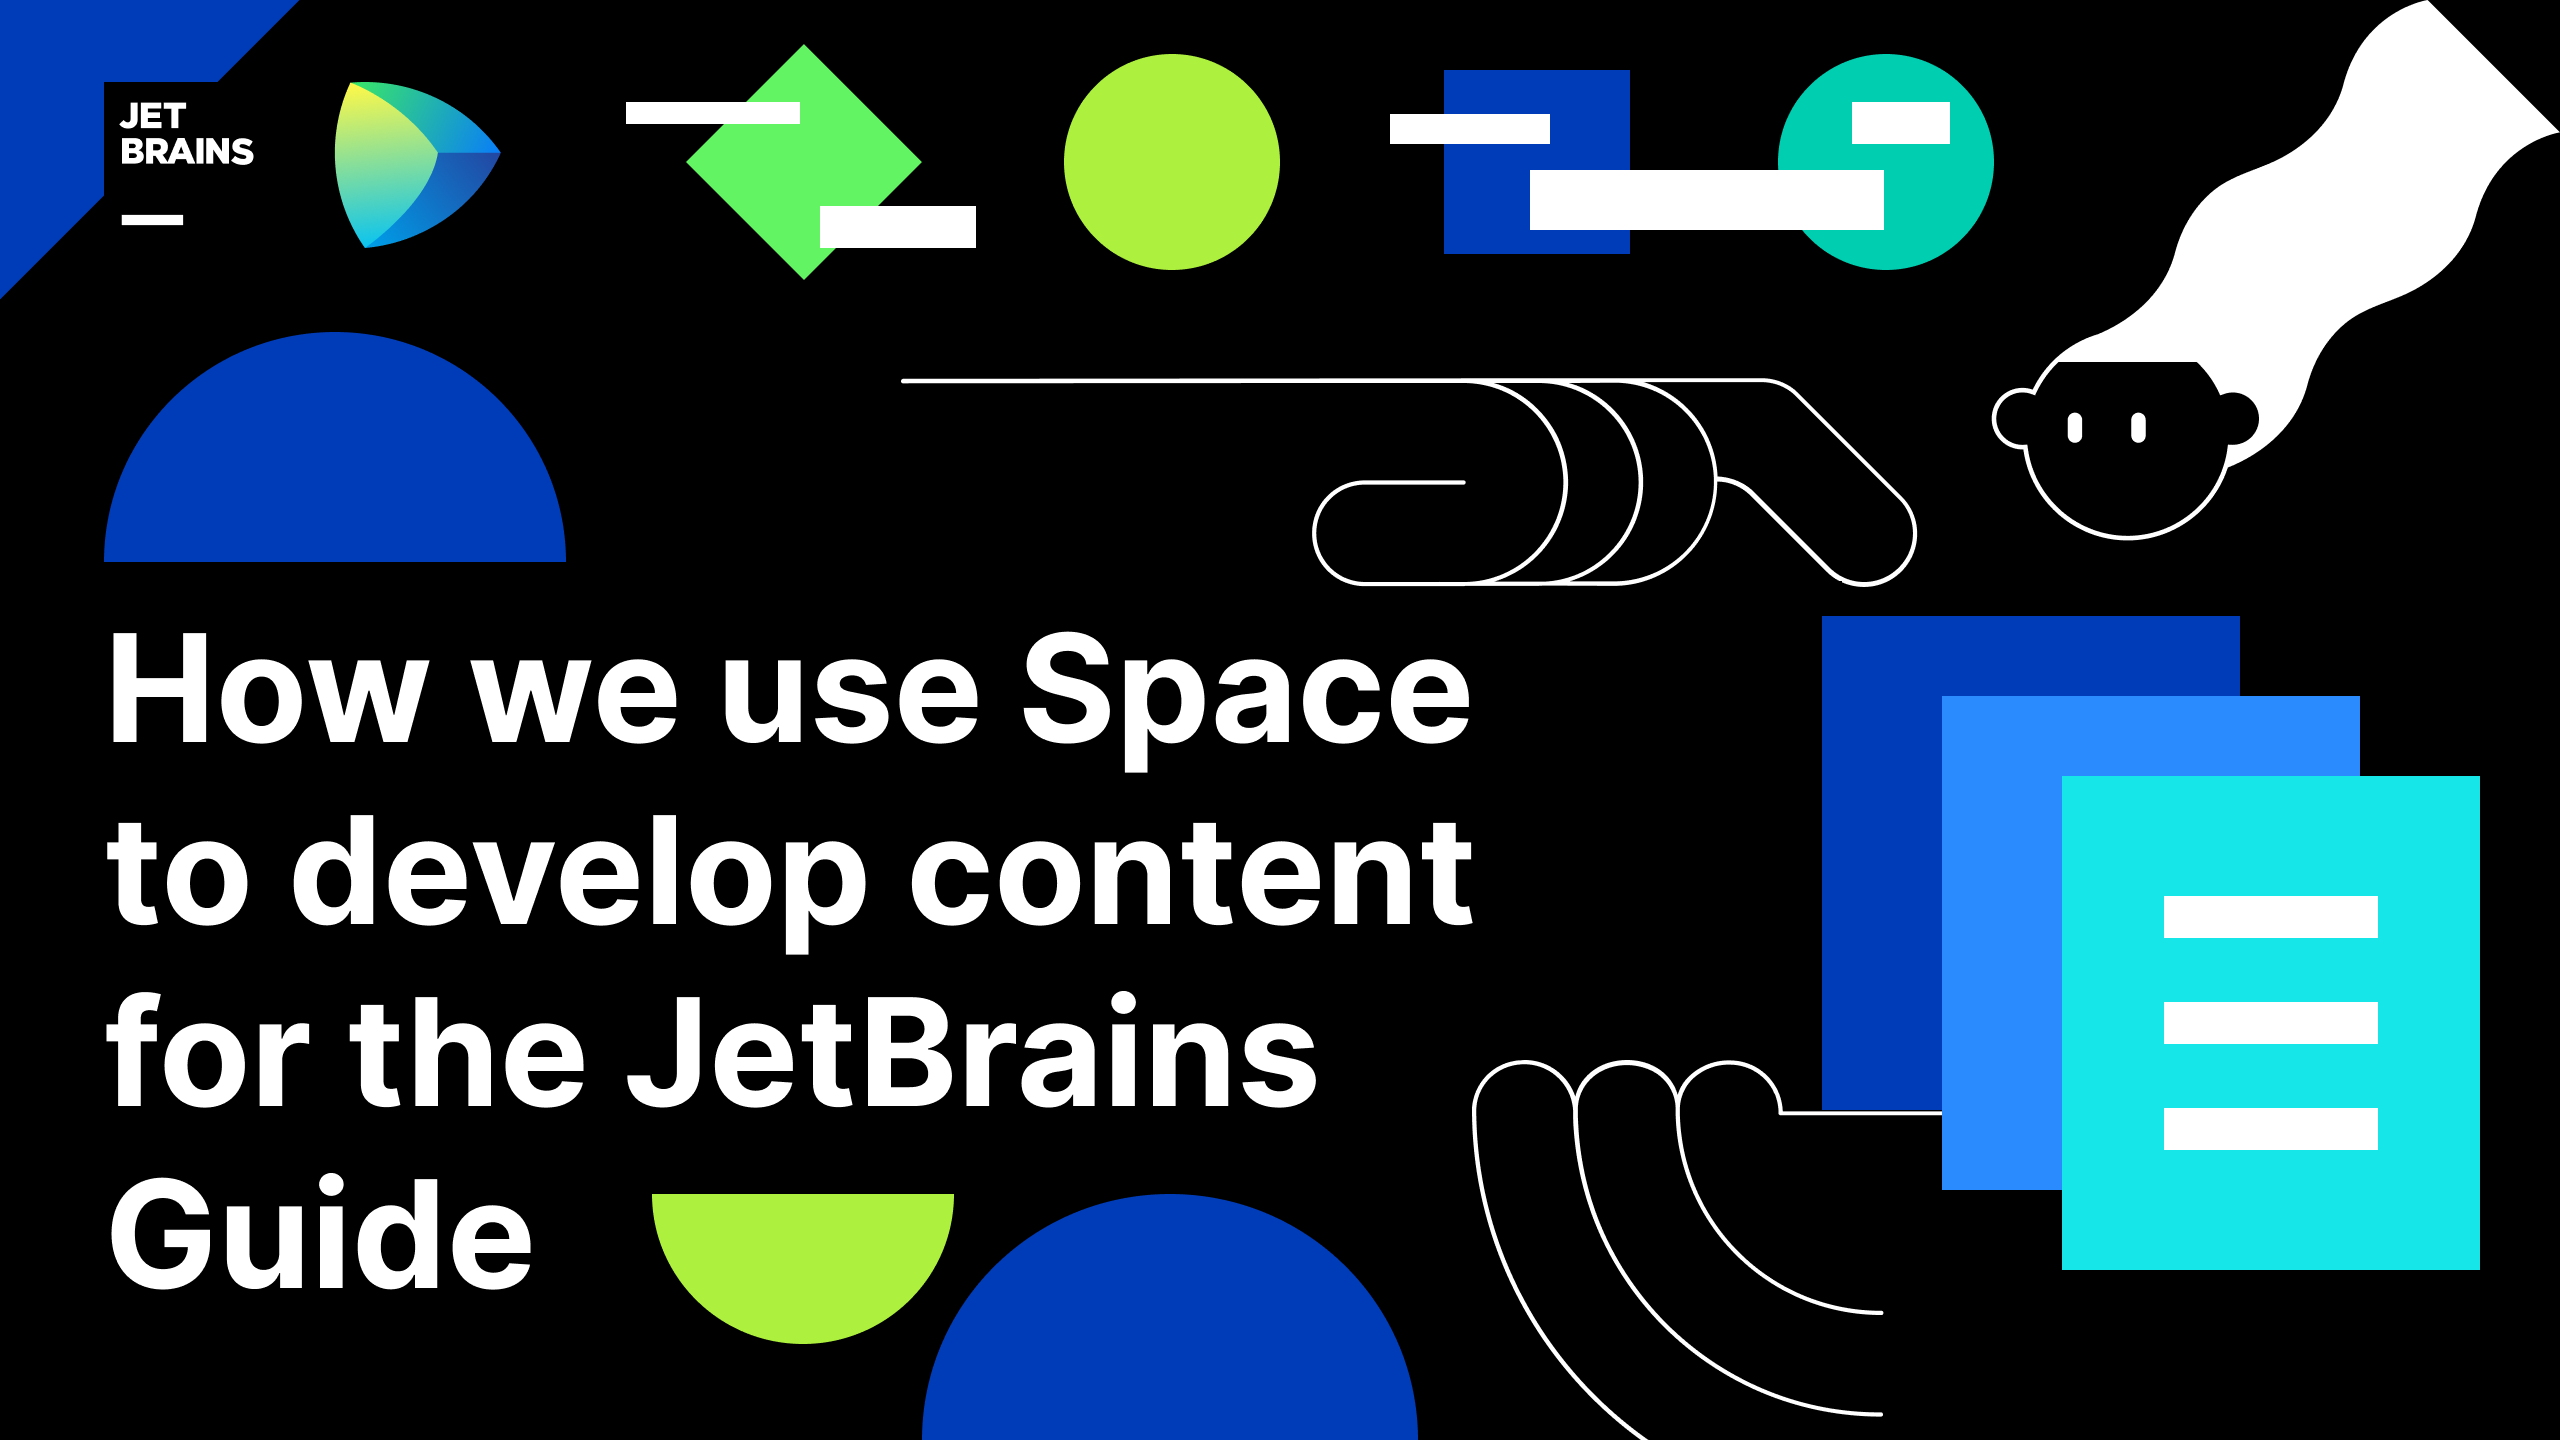 How the developer advocacy team at JetBrains uses Space to develop content for the JetBrains Guide